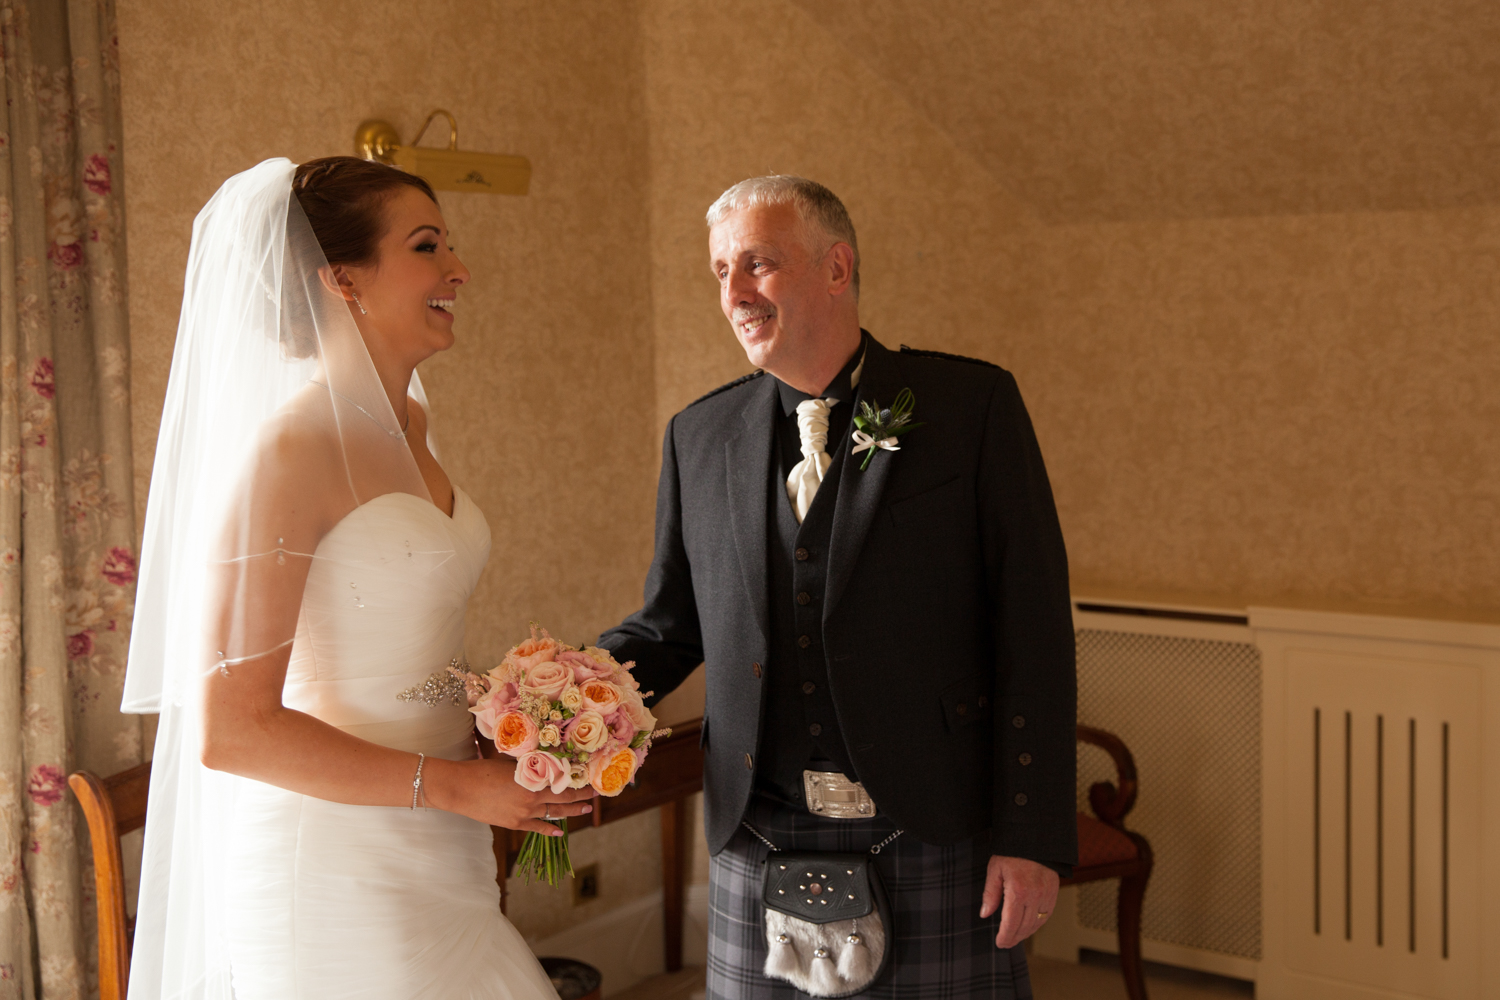 PICTORIAL_wedding_dryburgh_abbey_hotel_photographer_-76.jpg